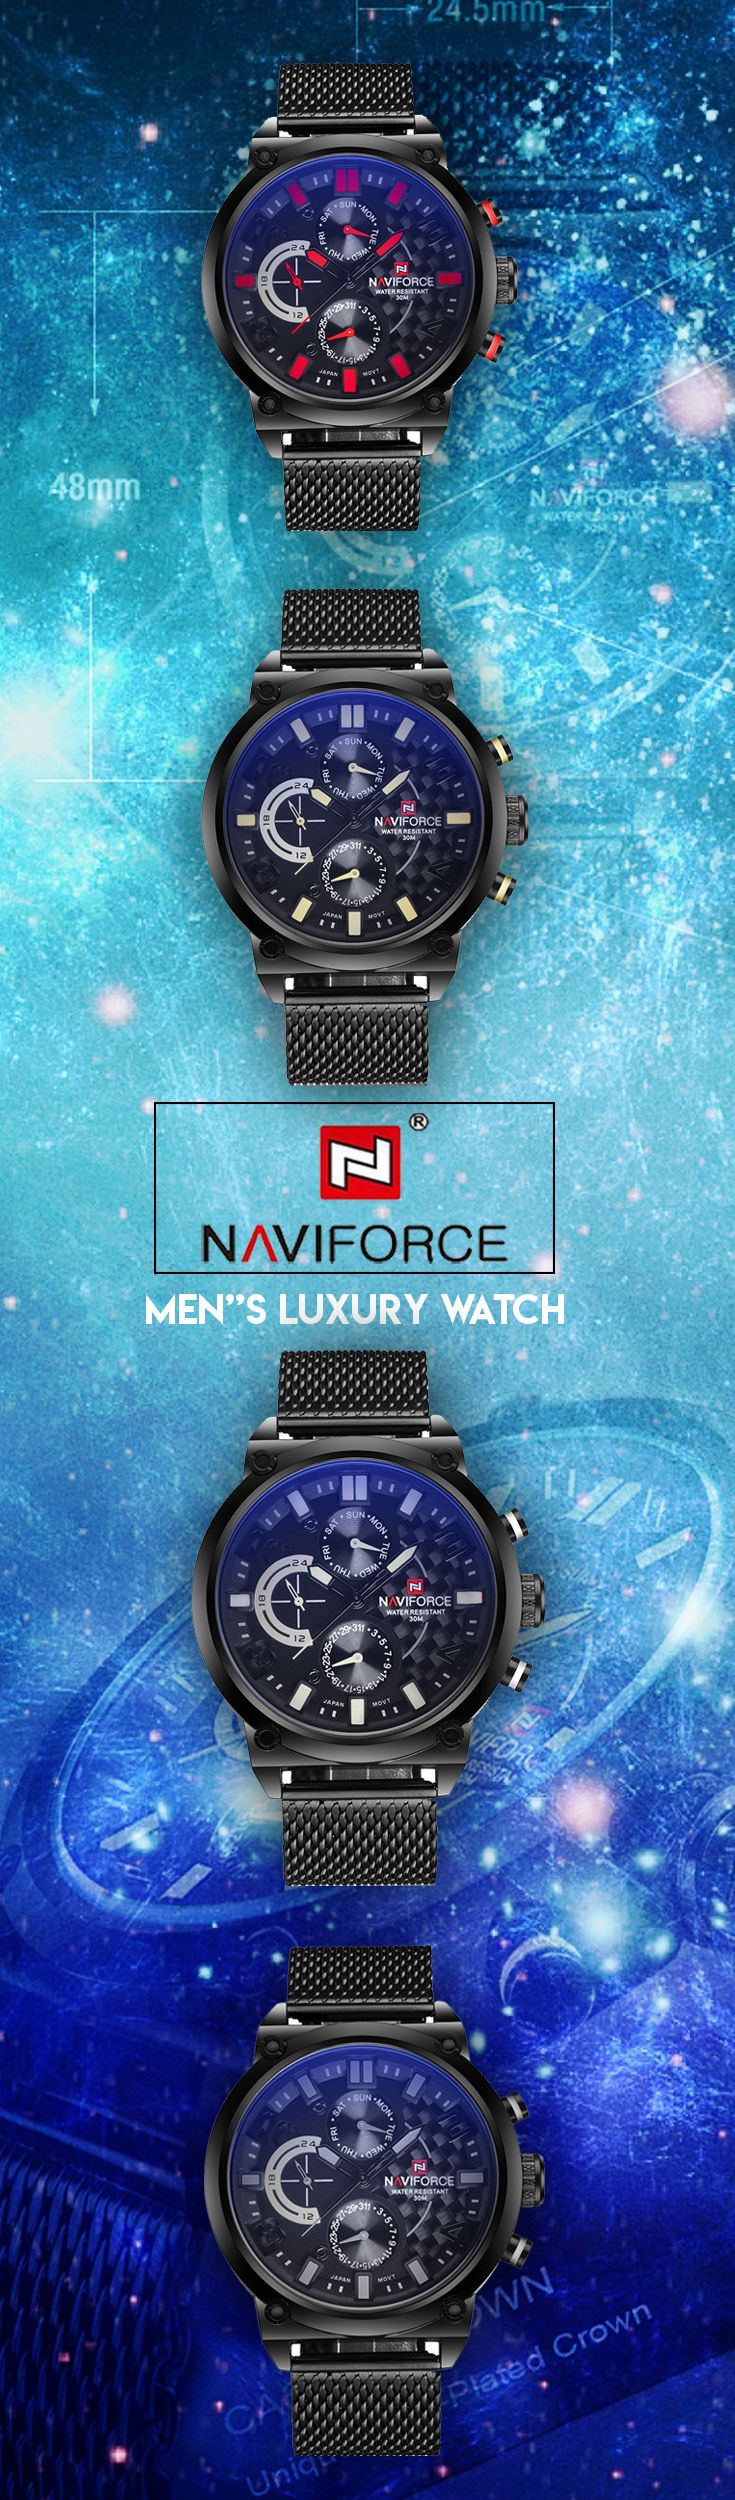 NAVIFORCE Luxury Full Steel Men Watches - Men's fashion brand affordable style timepiece chronograph #menswatch #steelwatch